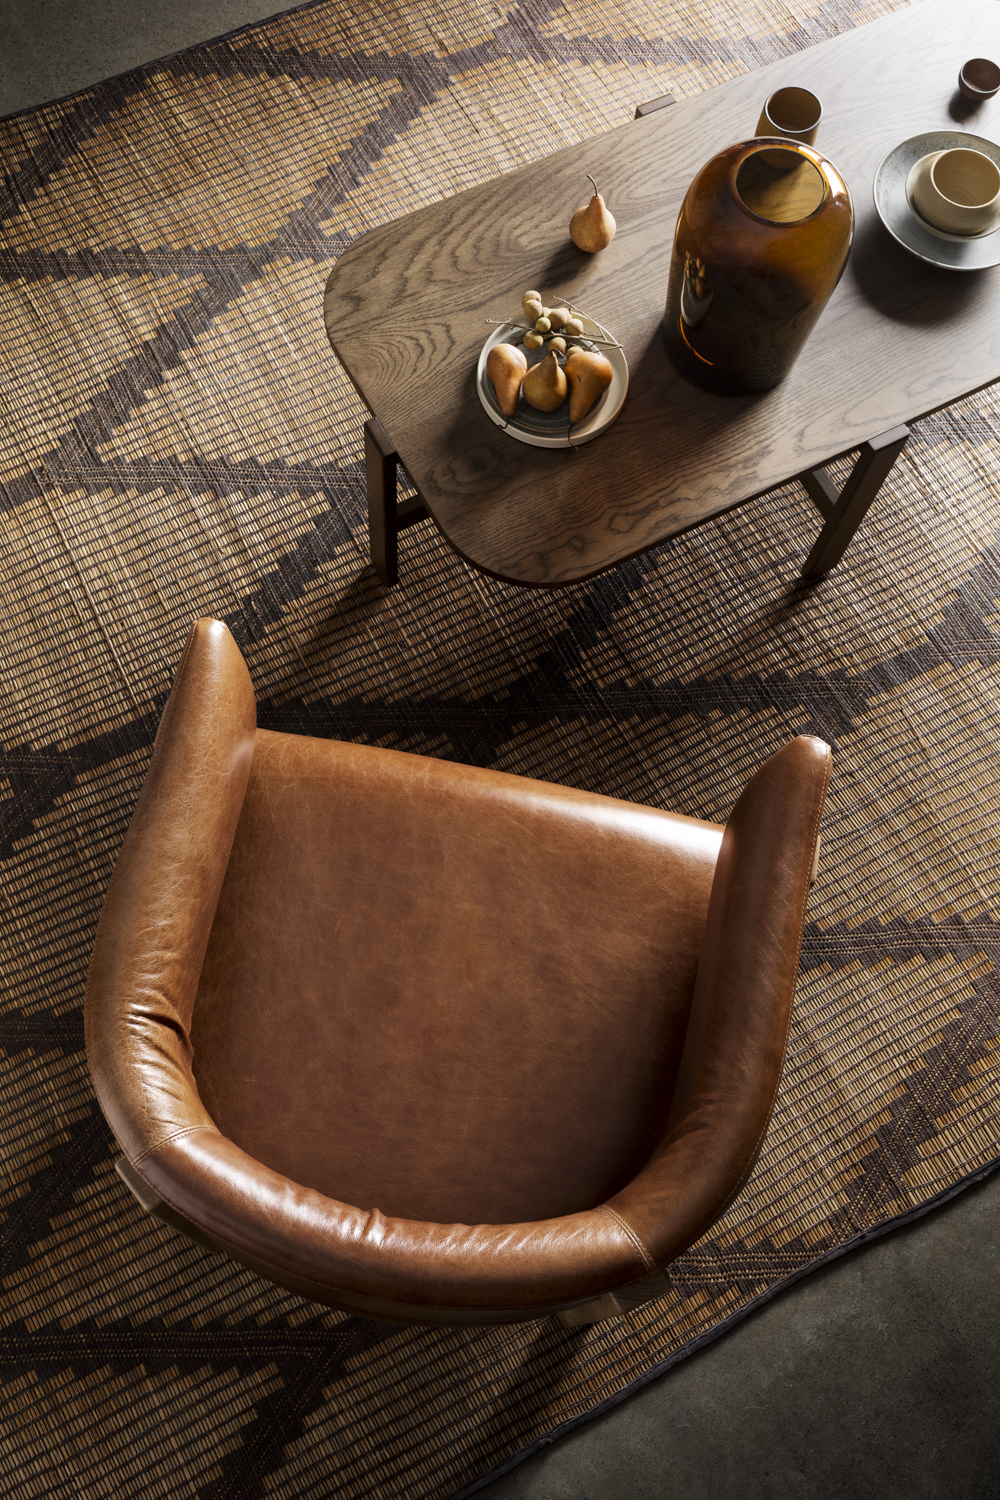 Bird's eye view of Flo armchair and coffee table. Showing off their beautiful curves.